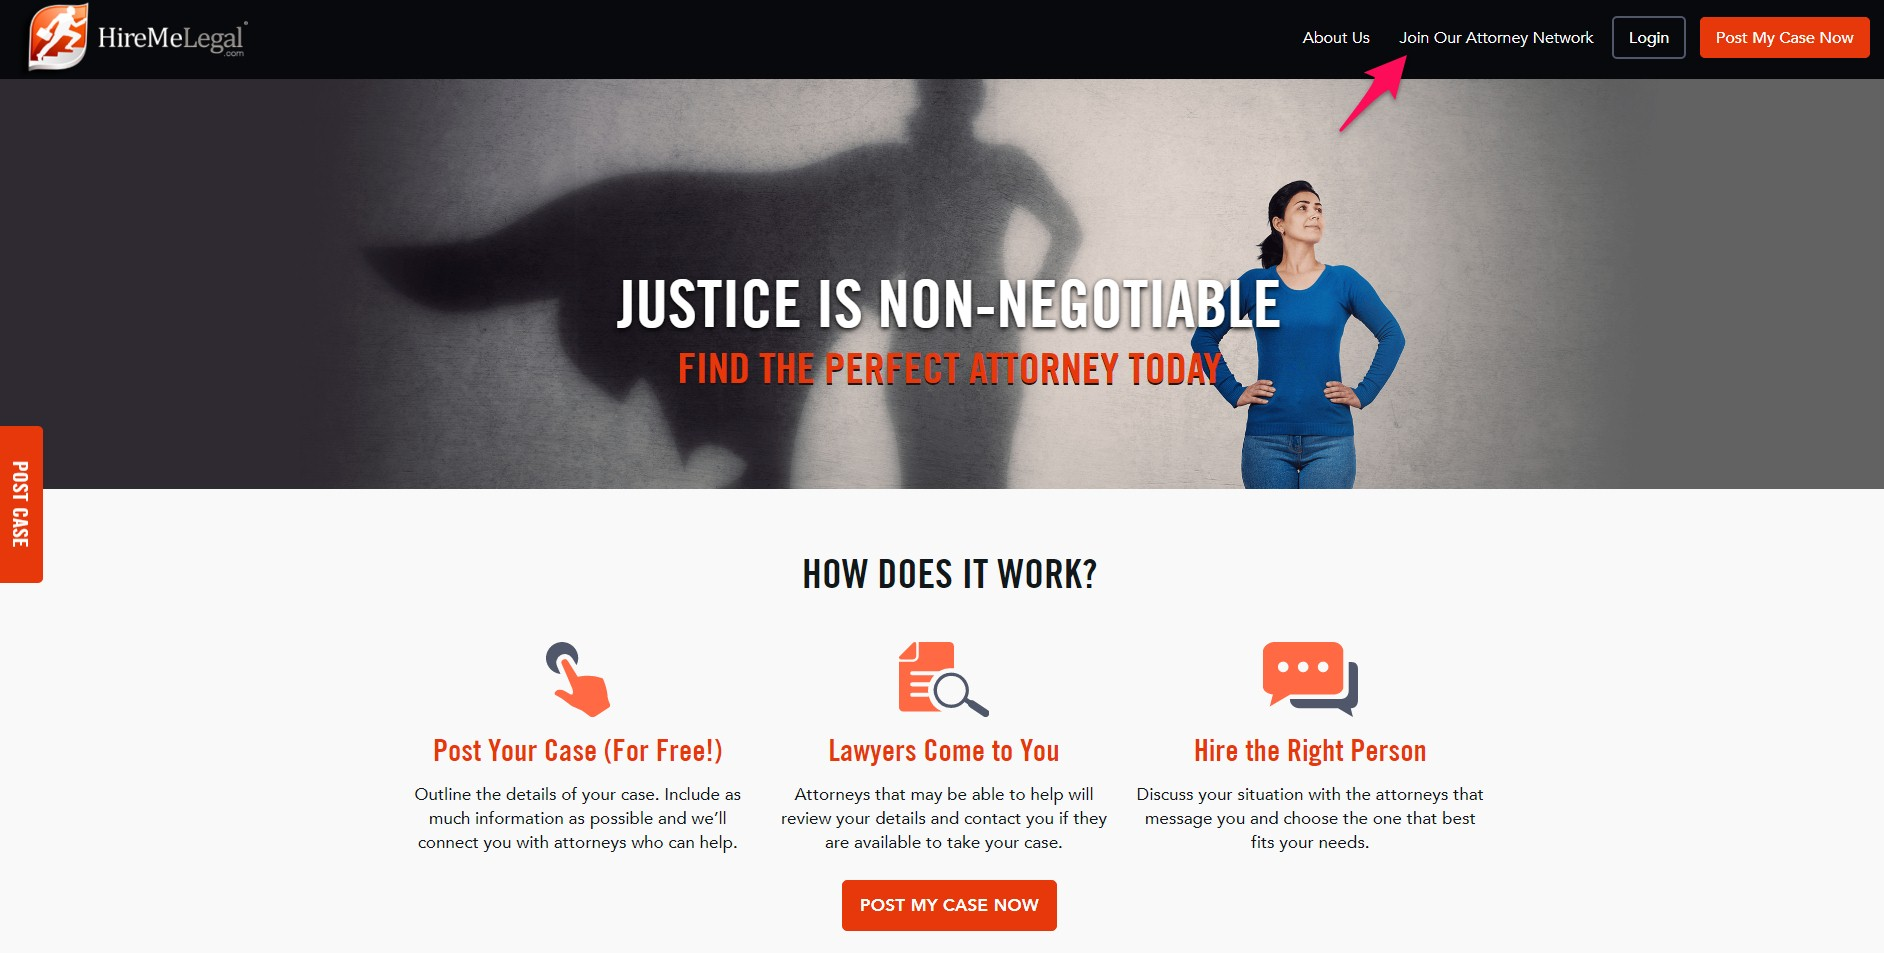 HireMeLegal helps clients find the perfect attorney fast